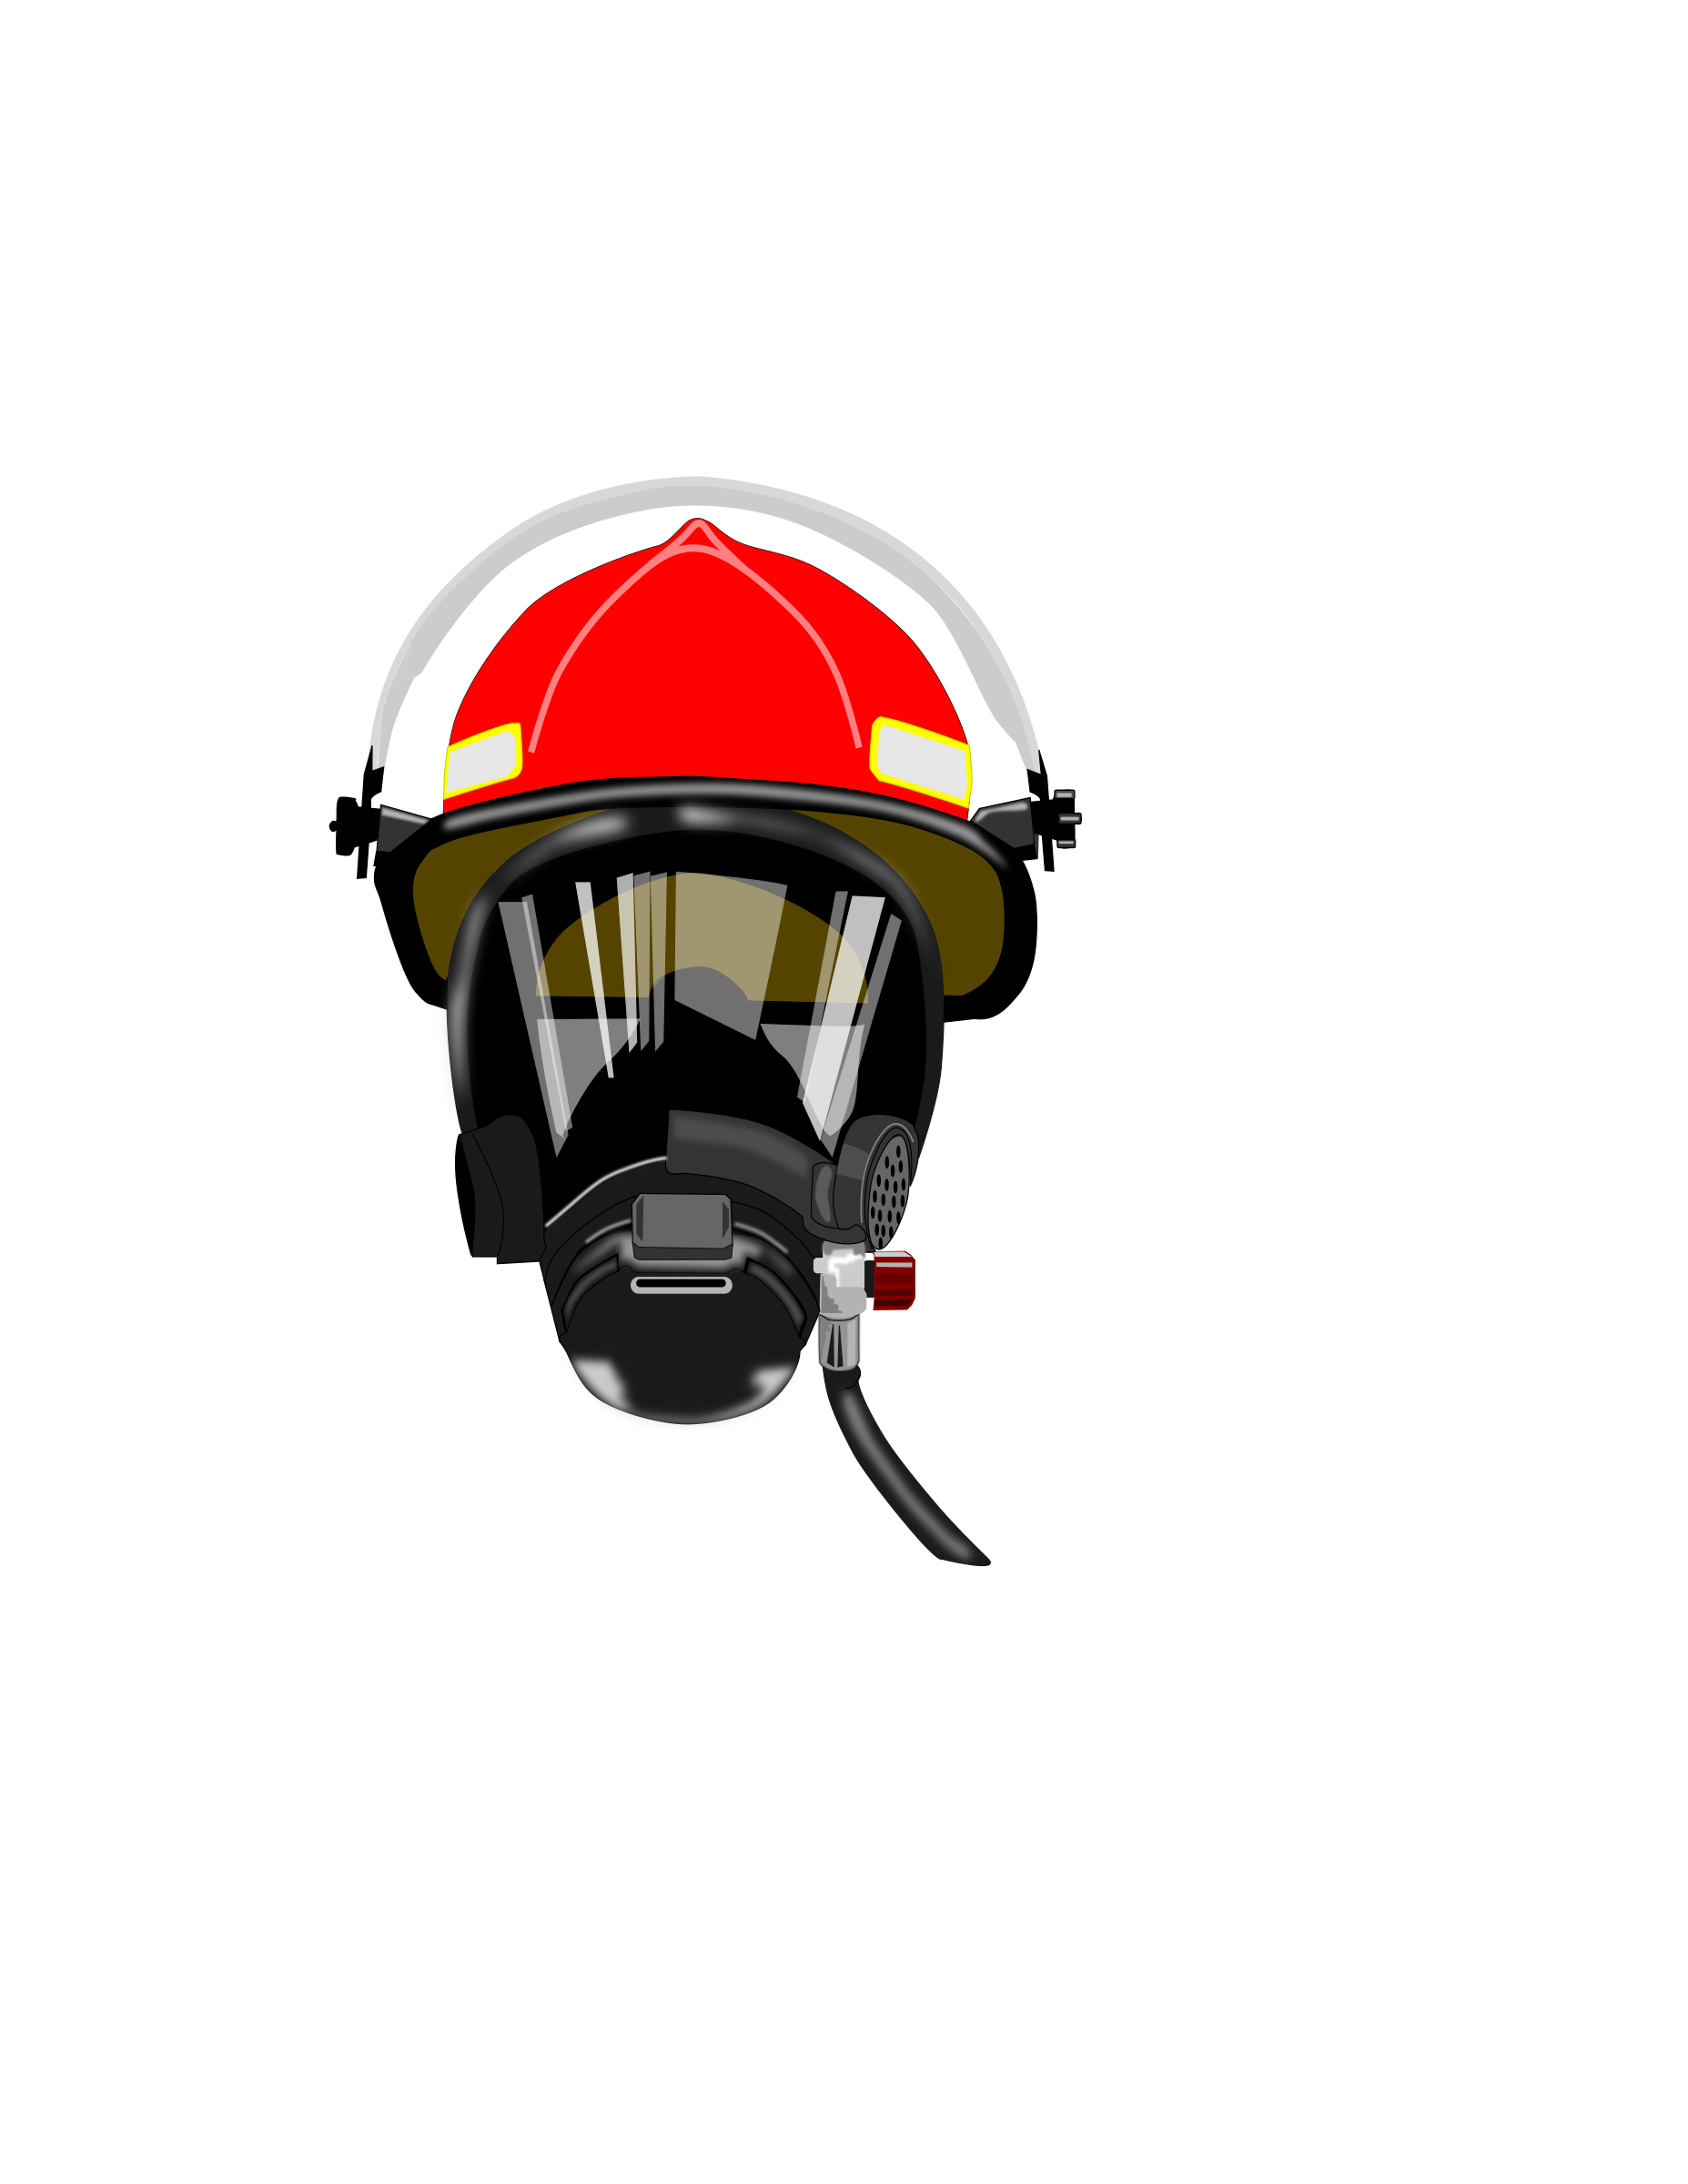 Helmet at getdrawings com. Clipart fire silhouette